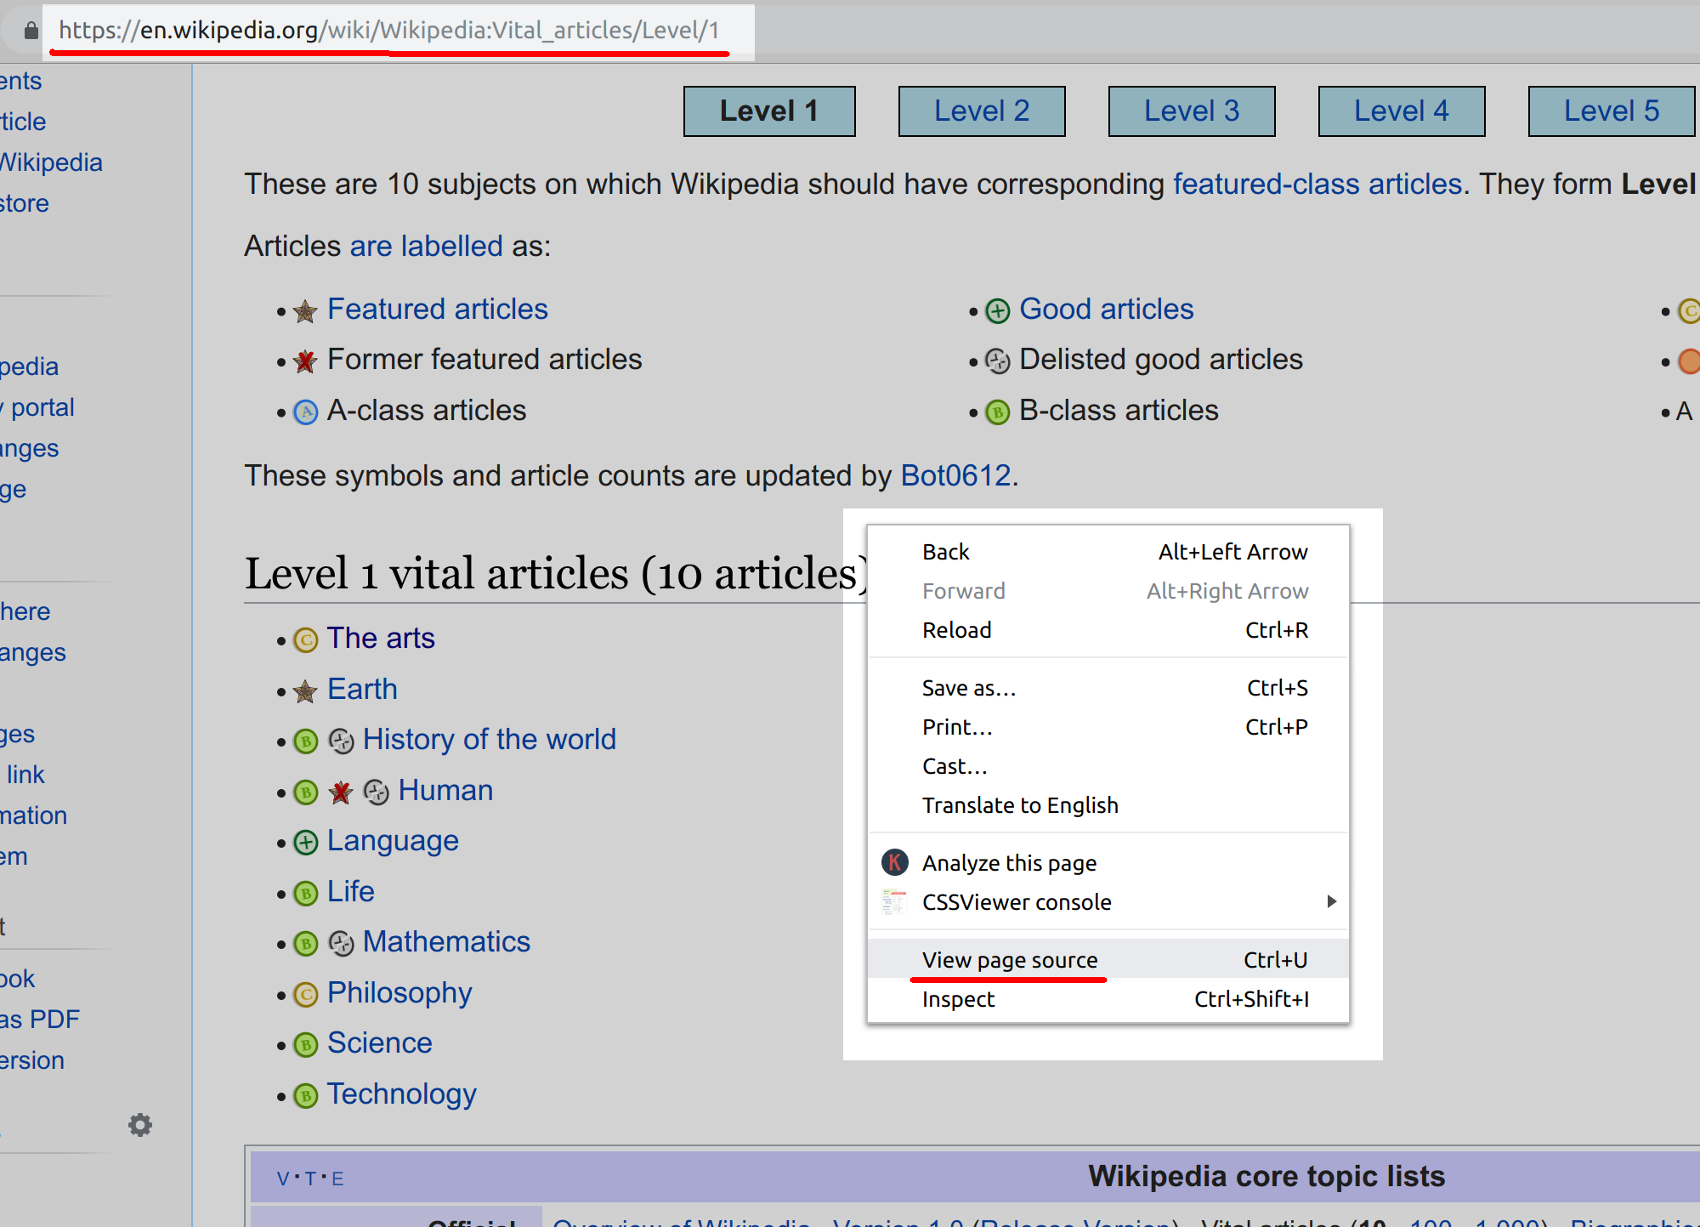 Screenshot of Wikipedia in a browser with View Page Source option